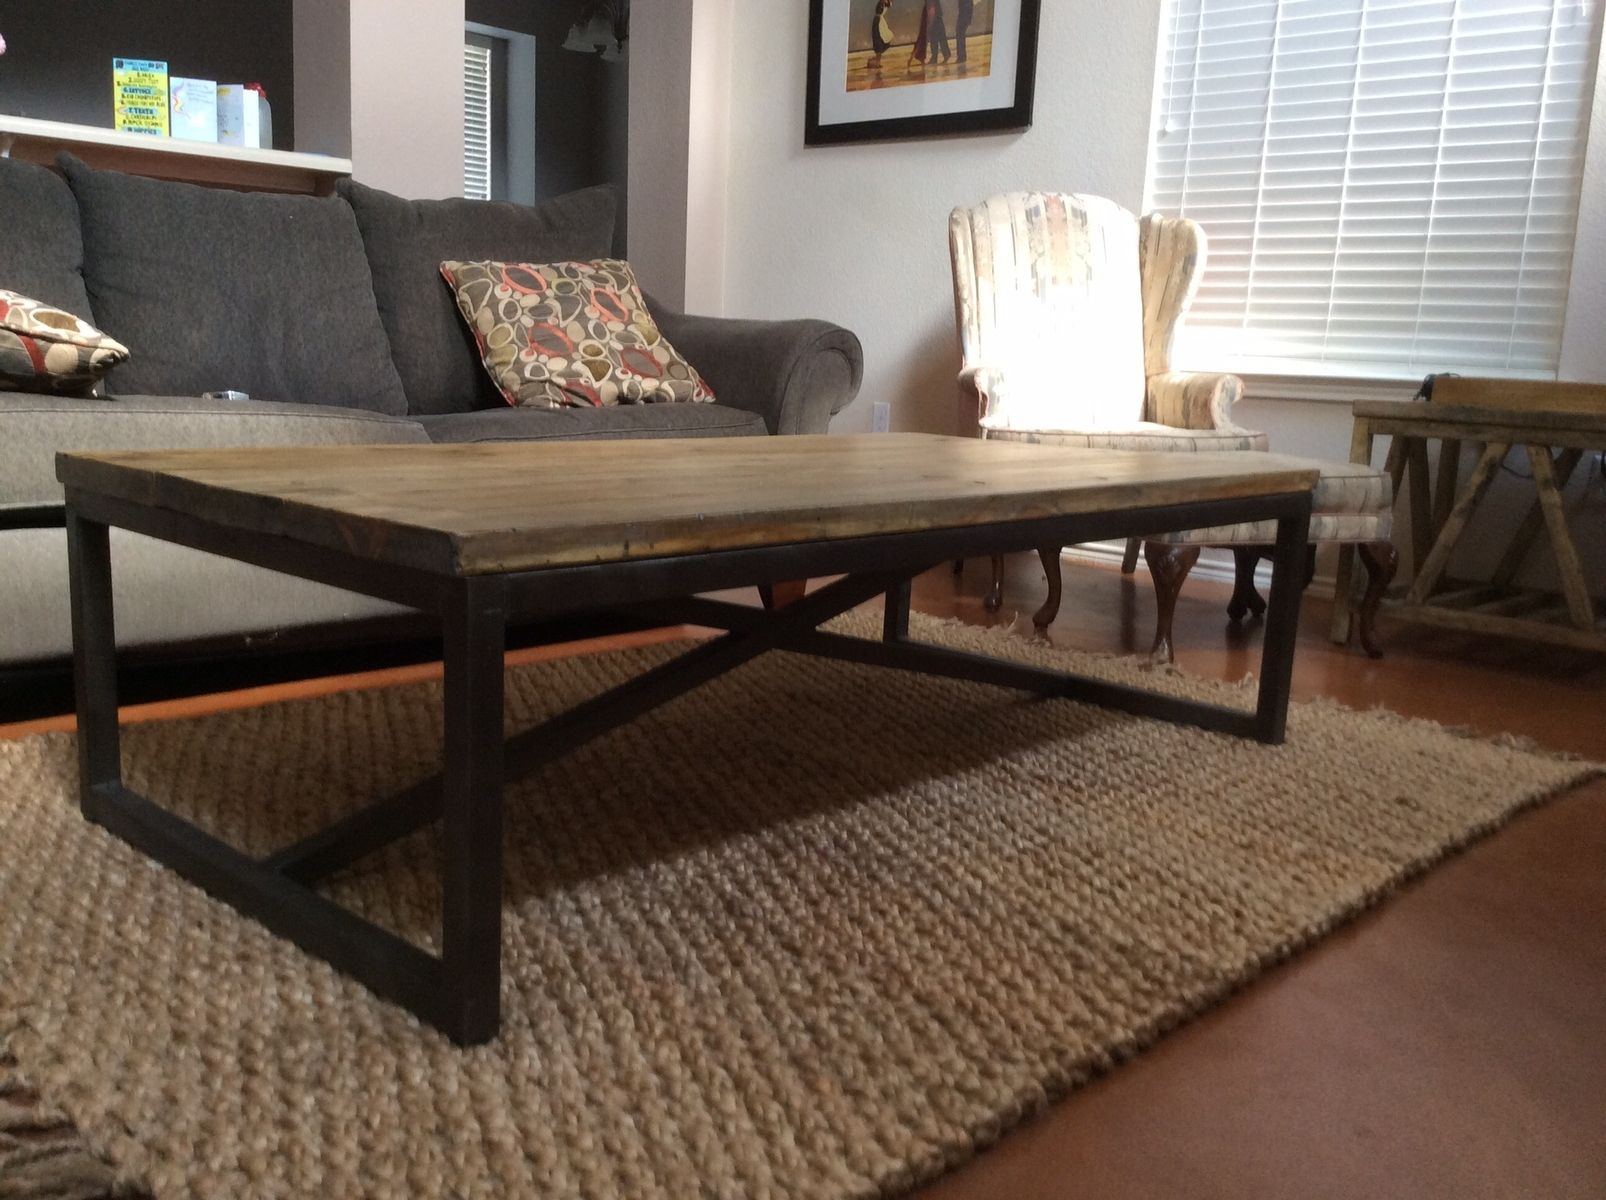 custom made rustic x brace coffee table with recycled metal frame - Metal Frame Coffee Table